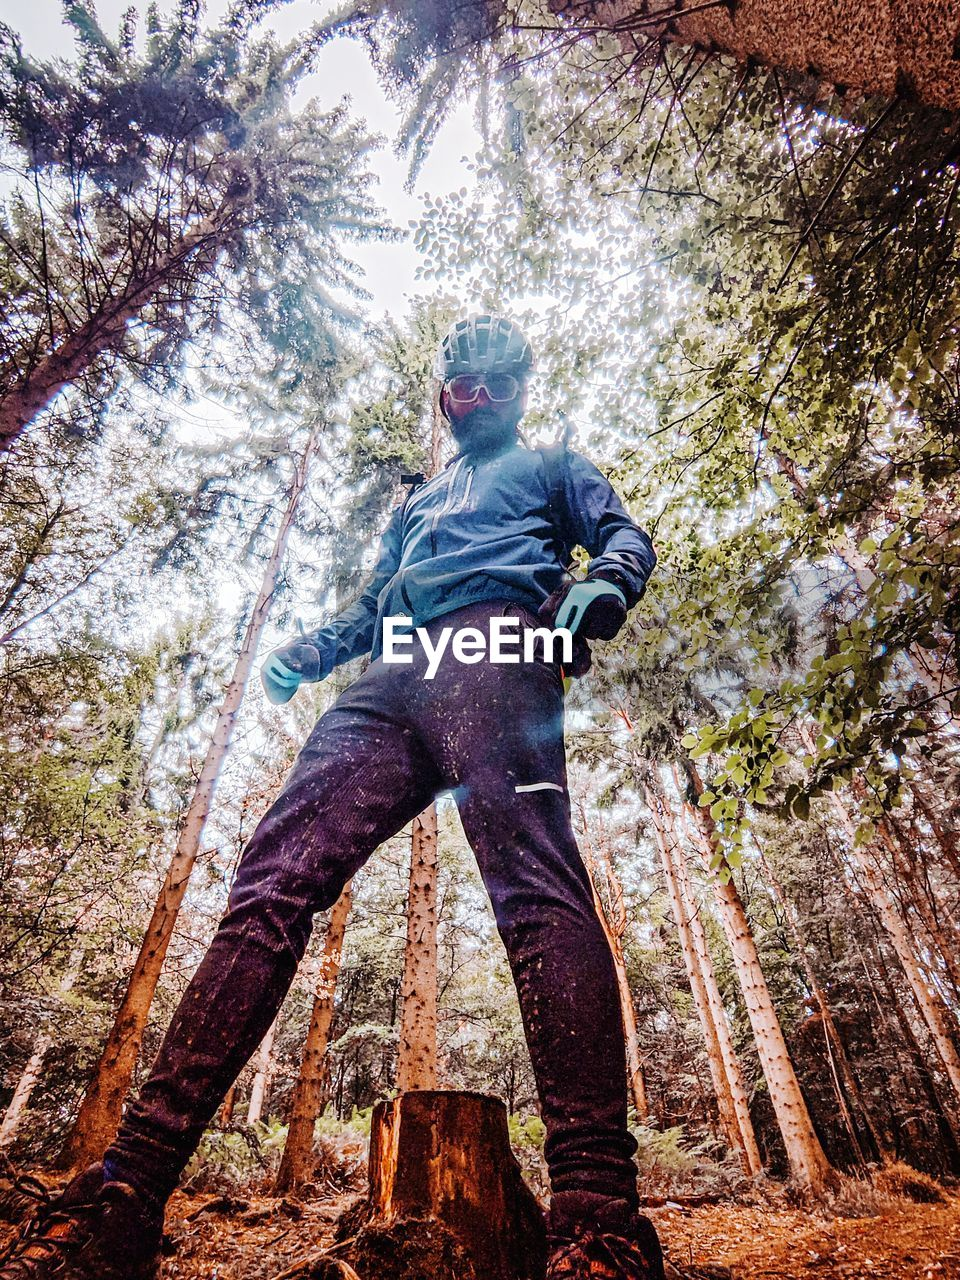 LOW ANGLE VIEW OF MAN STANDING ON TREE IN FOREST